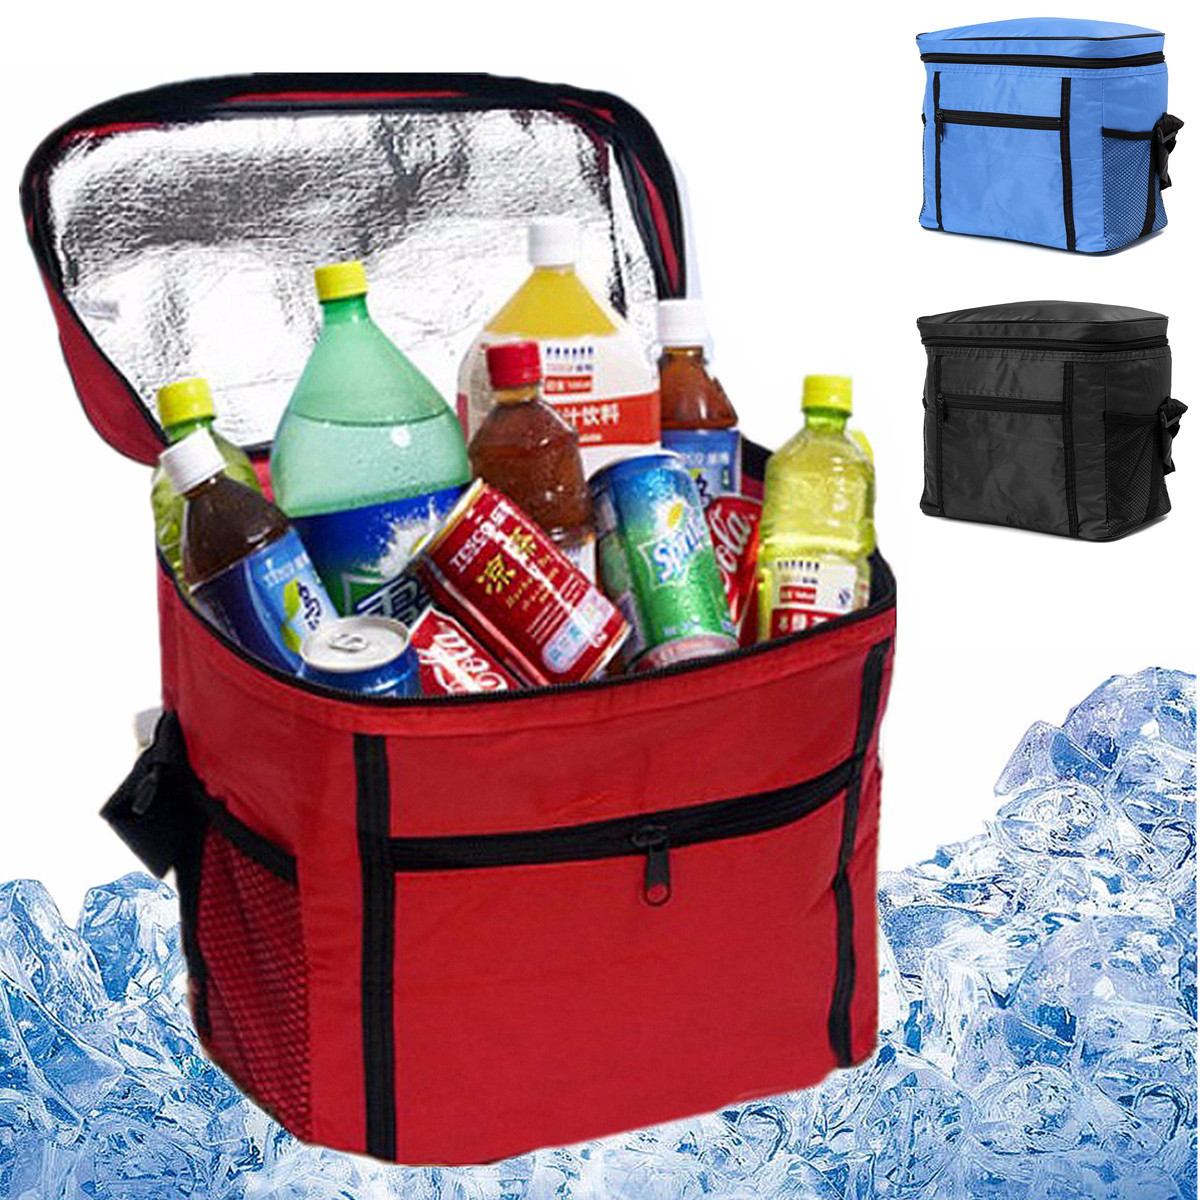 Portable Large Picnic Lunch Storage Bag Travel Thermal Insulated Cool Bag Tote Lunch Drink Bags Boxes